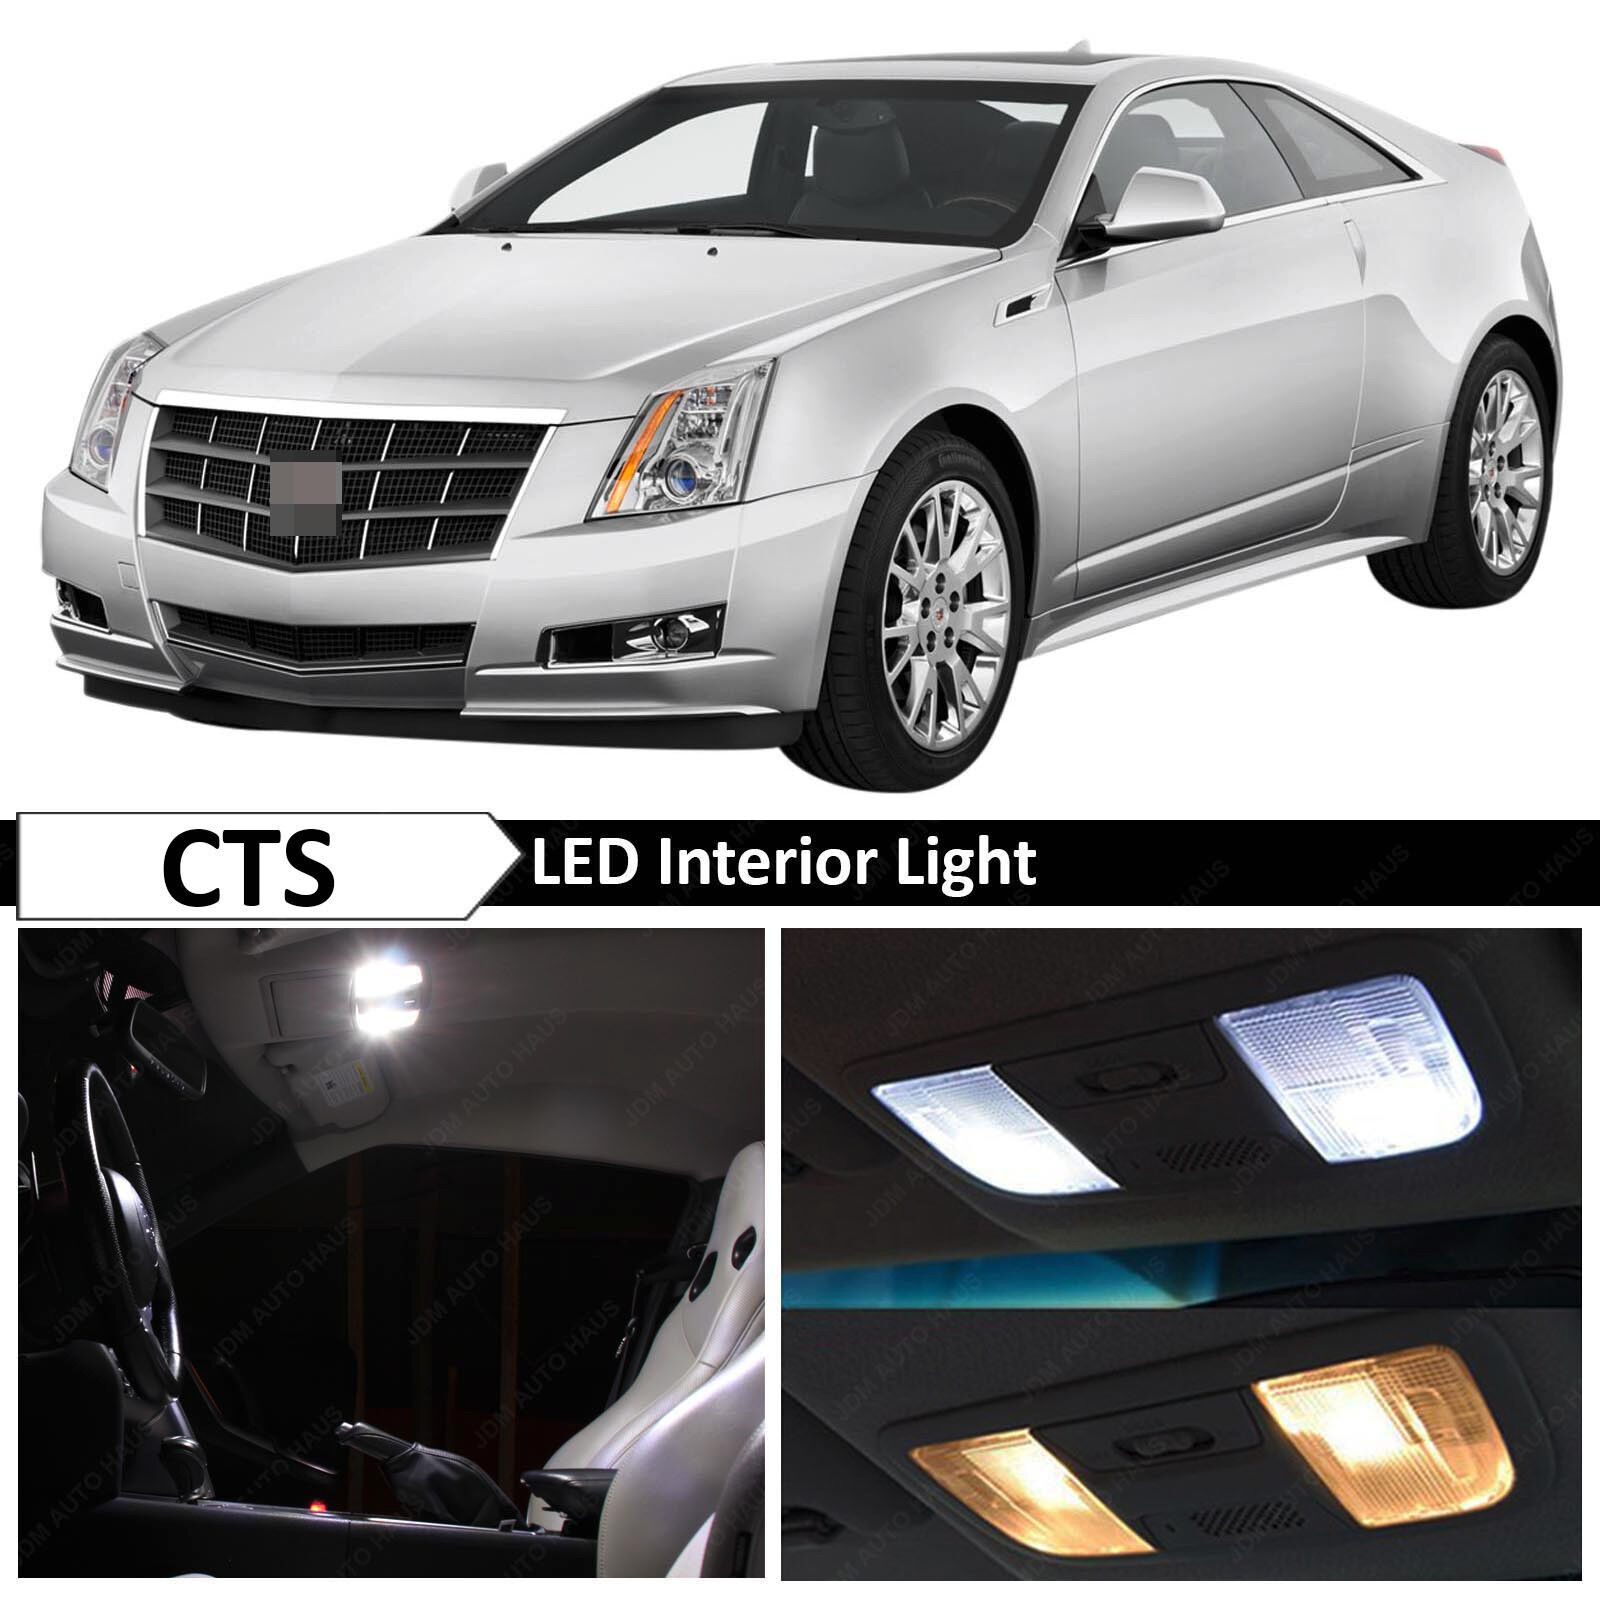 Cadillac Cts 2013 Price: 16x White Interior LED Lights Package Kit For 2008-2013 Cadillac CTS + TOOL